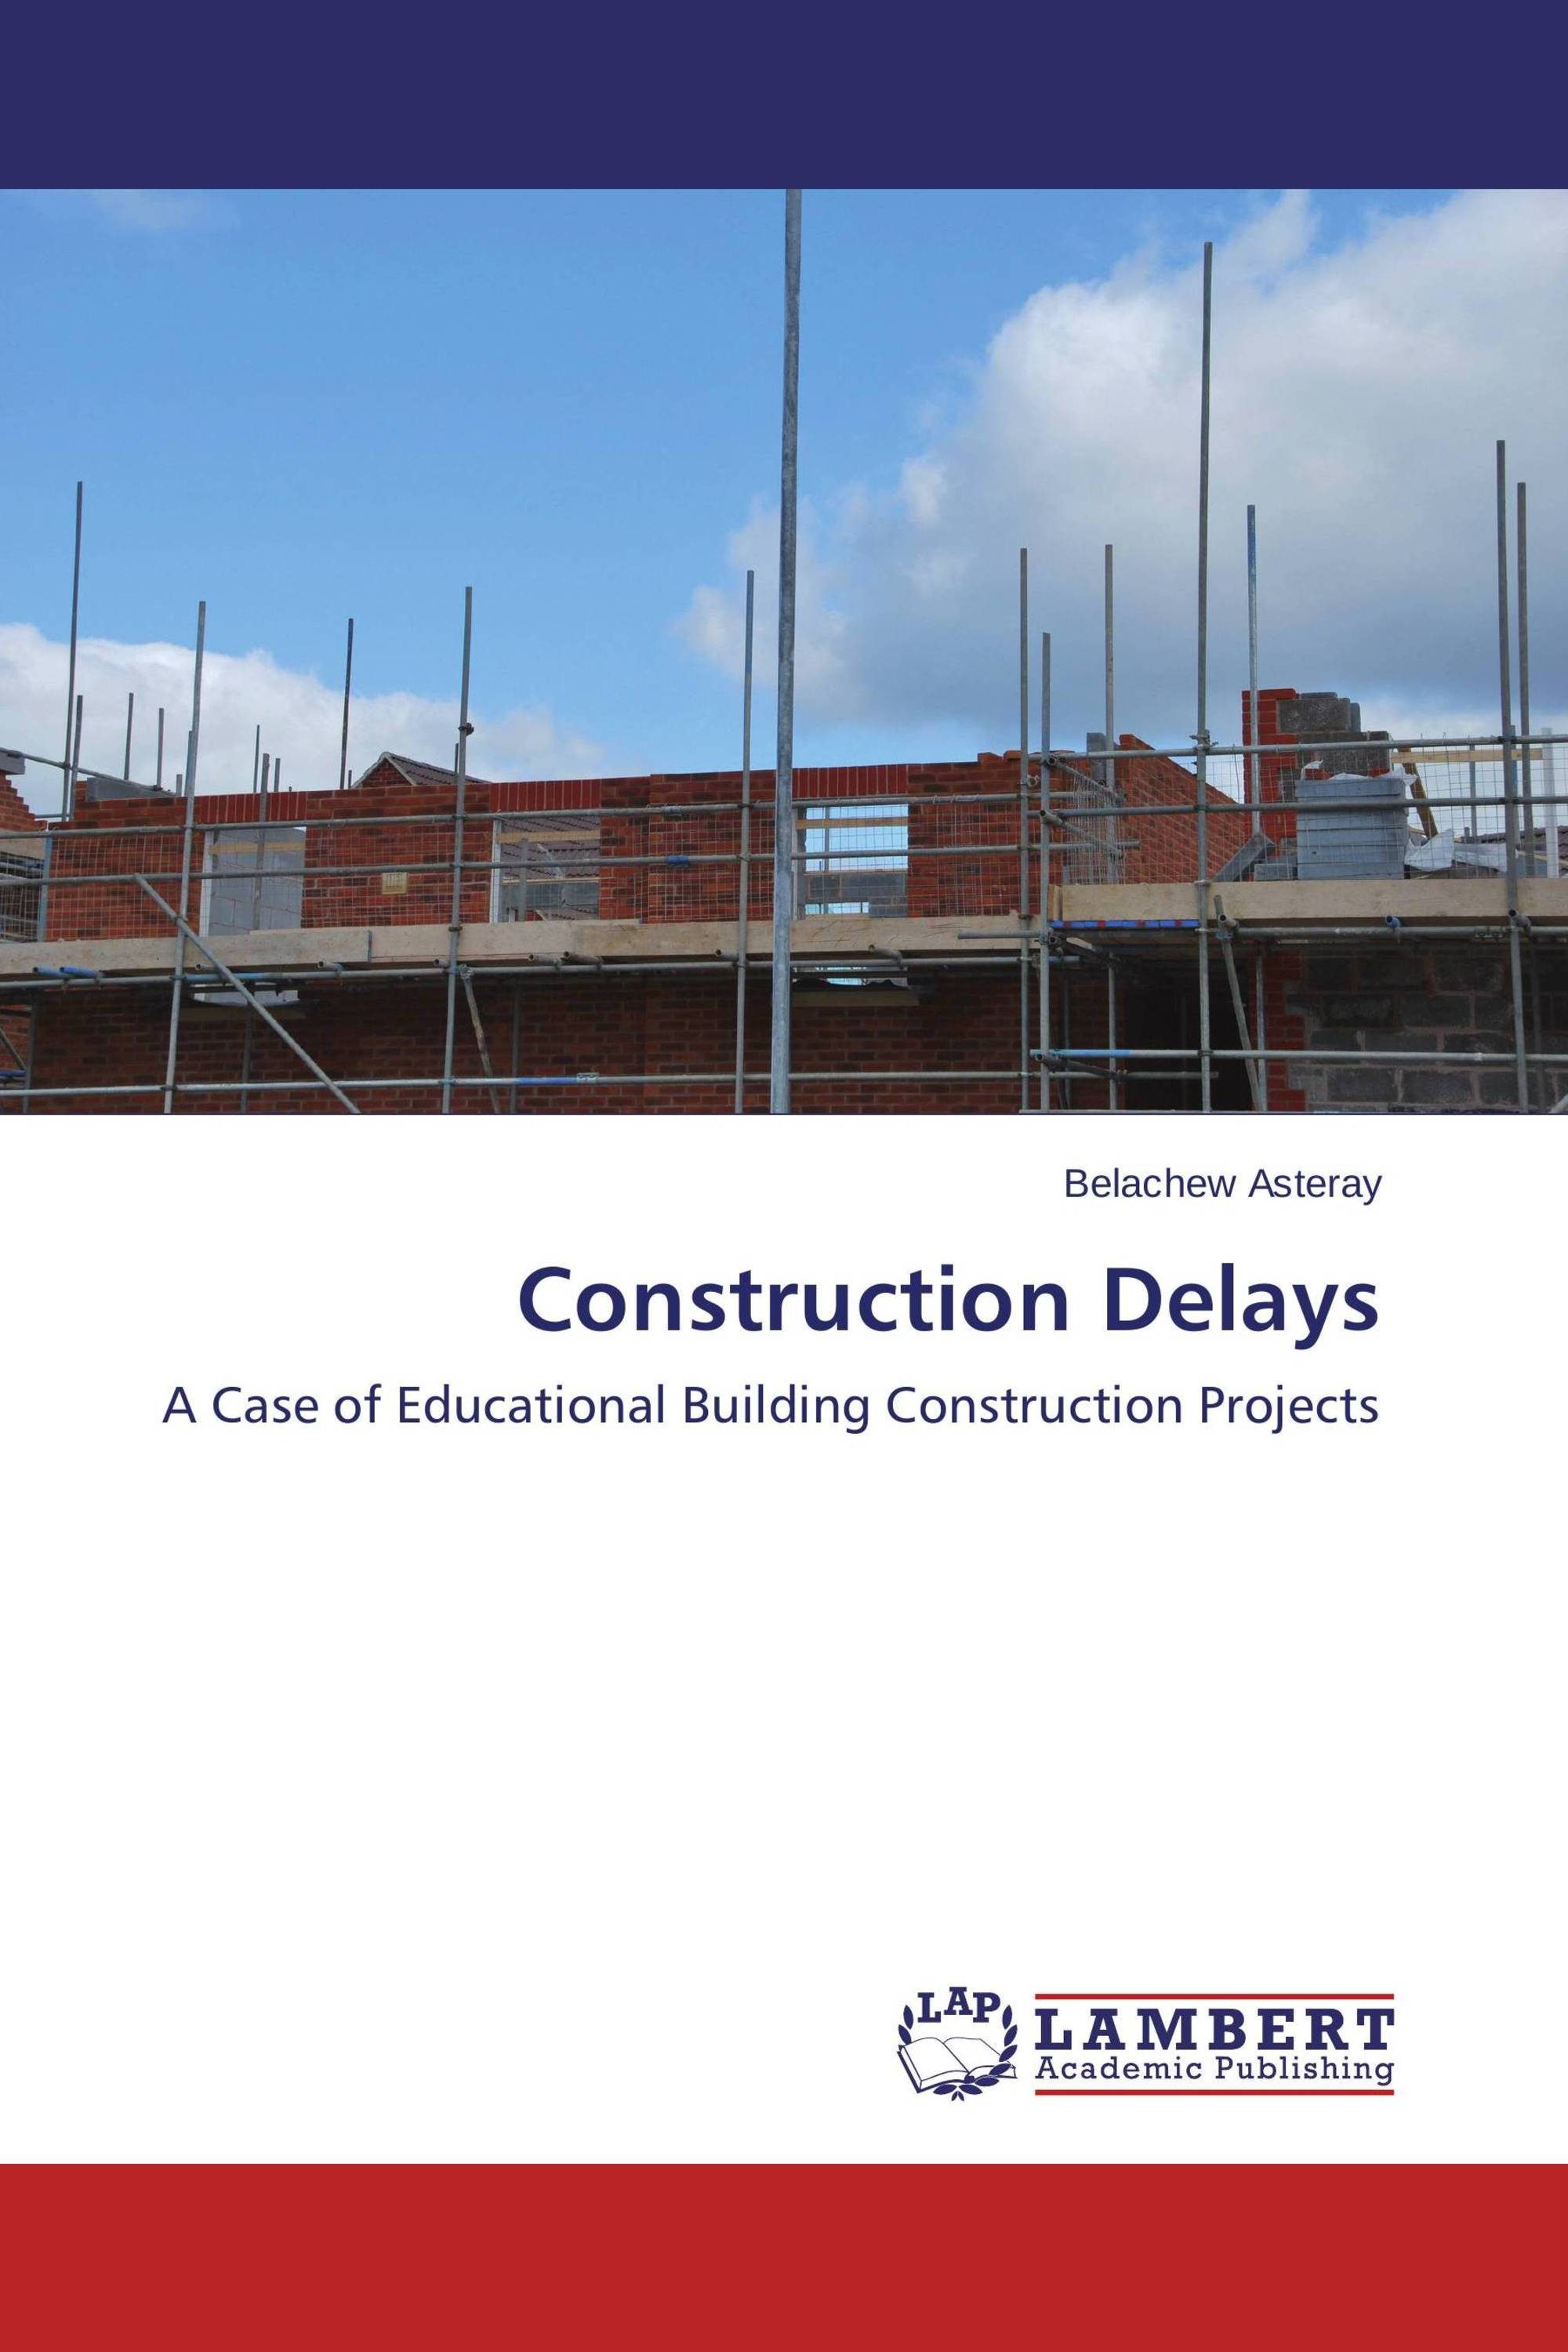 methods of minimizing delays construction essay Work zone road user costs - concepts and applications chapter 4 application of wz ruc analysis in contracting/project delivery methods 41 overview time delay has been a chronic problem in the delivery of highway construction projects.